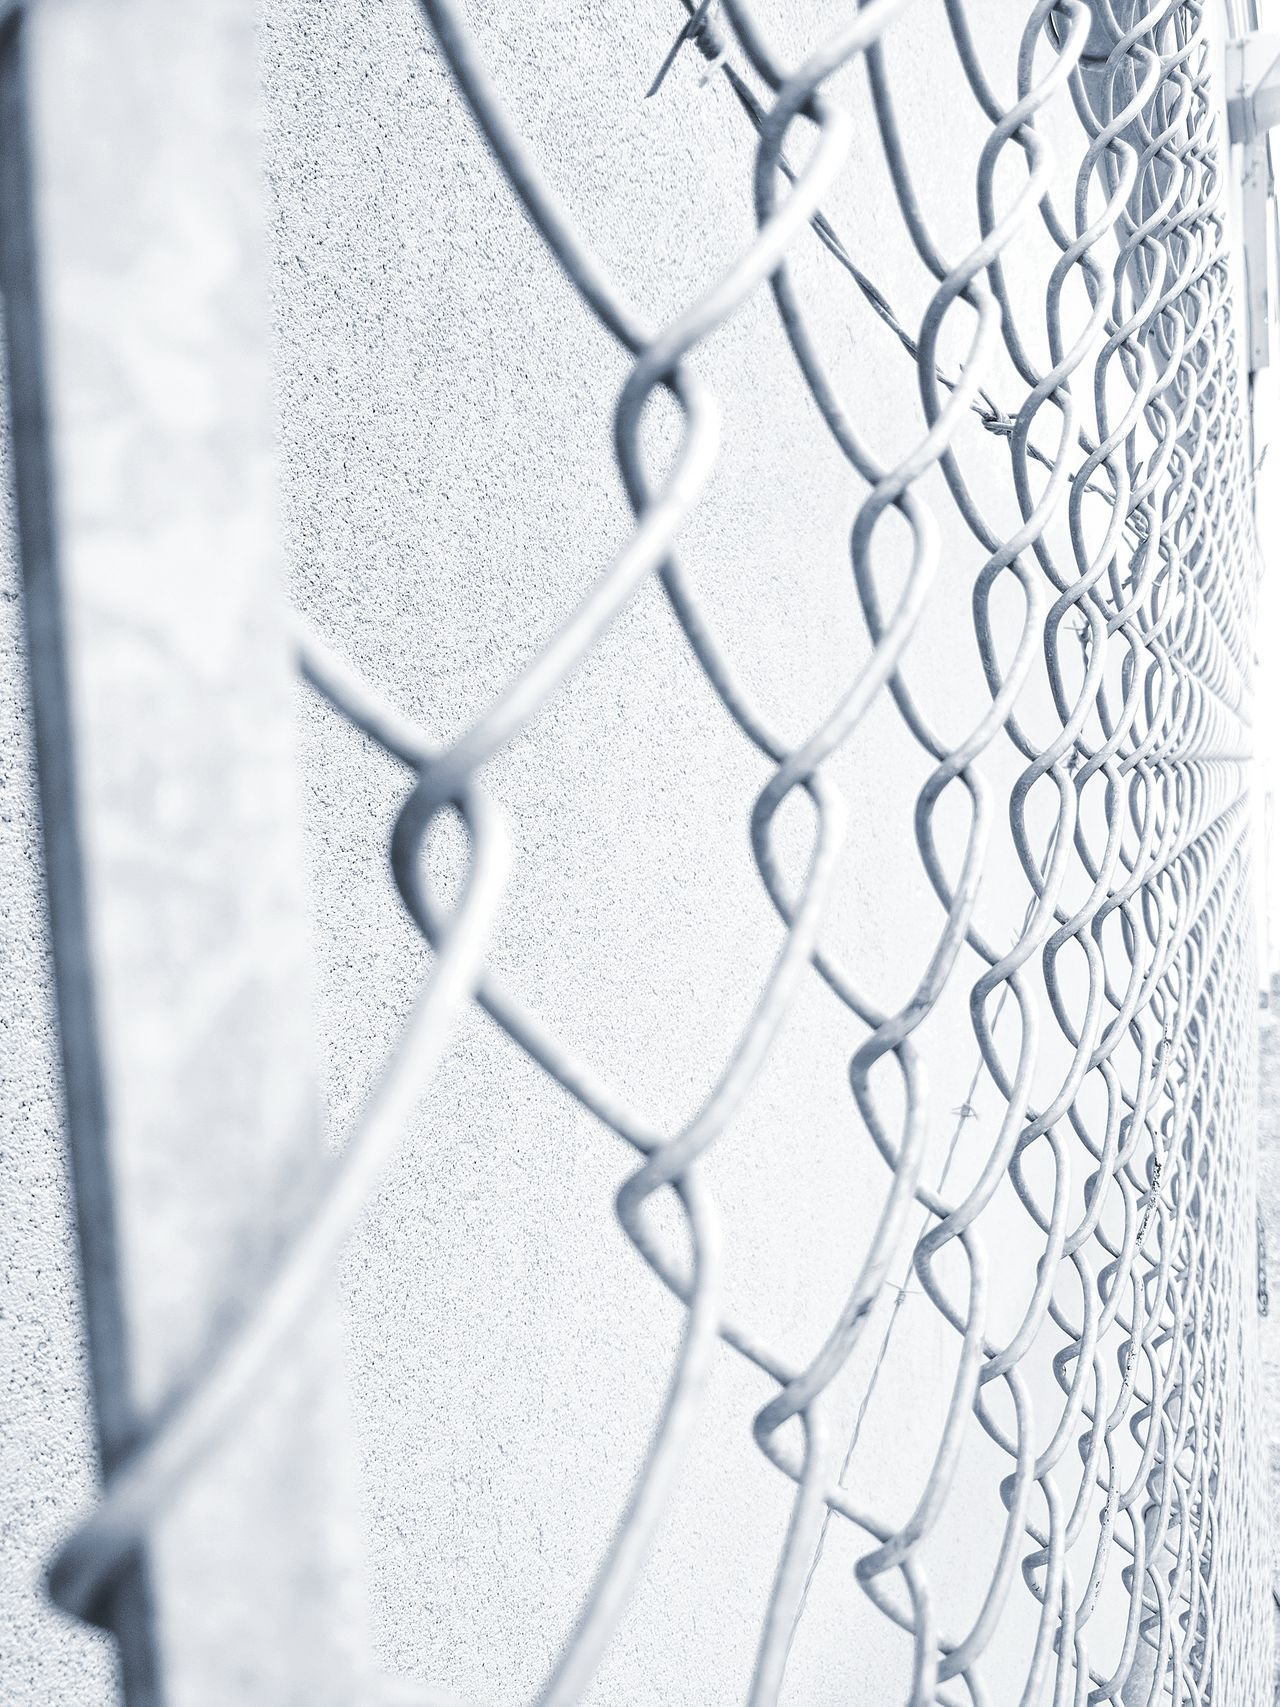 Fences Security Chainlink Fence Safety Protection Pattern Metal Barbed Wire No People Separation Outdoors Close-up Prison Cage Abstract